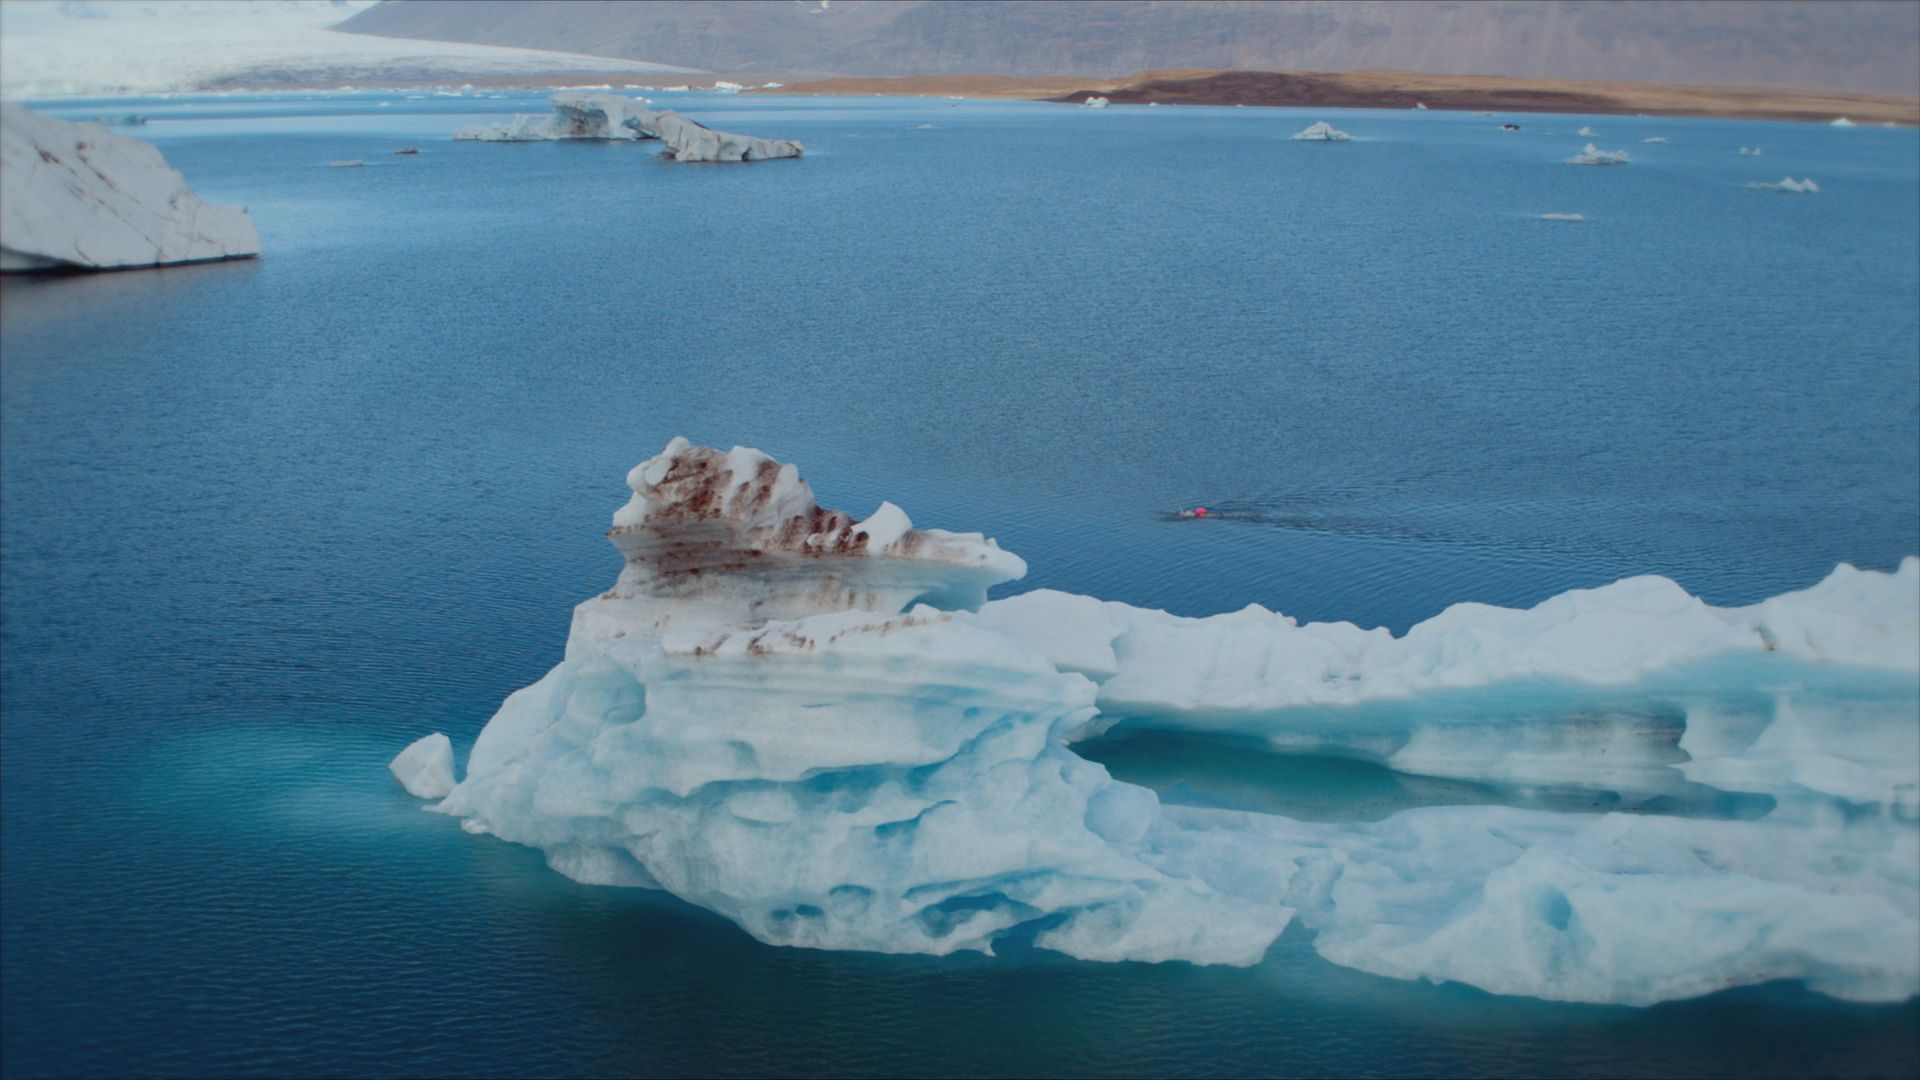 Ice swimmer swimming in the lagoon. This is from Europe from above, season 4. [Photo of the day - September 2021]